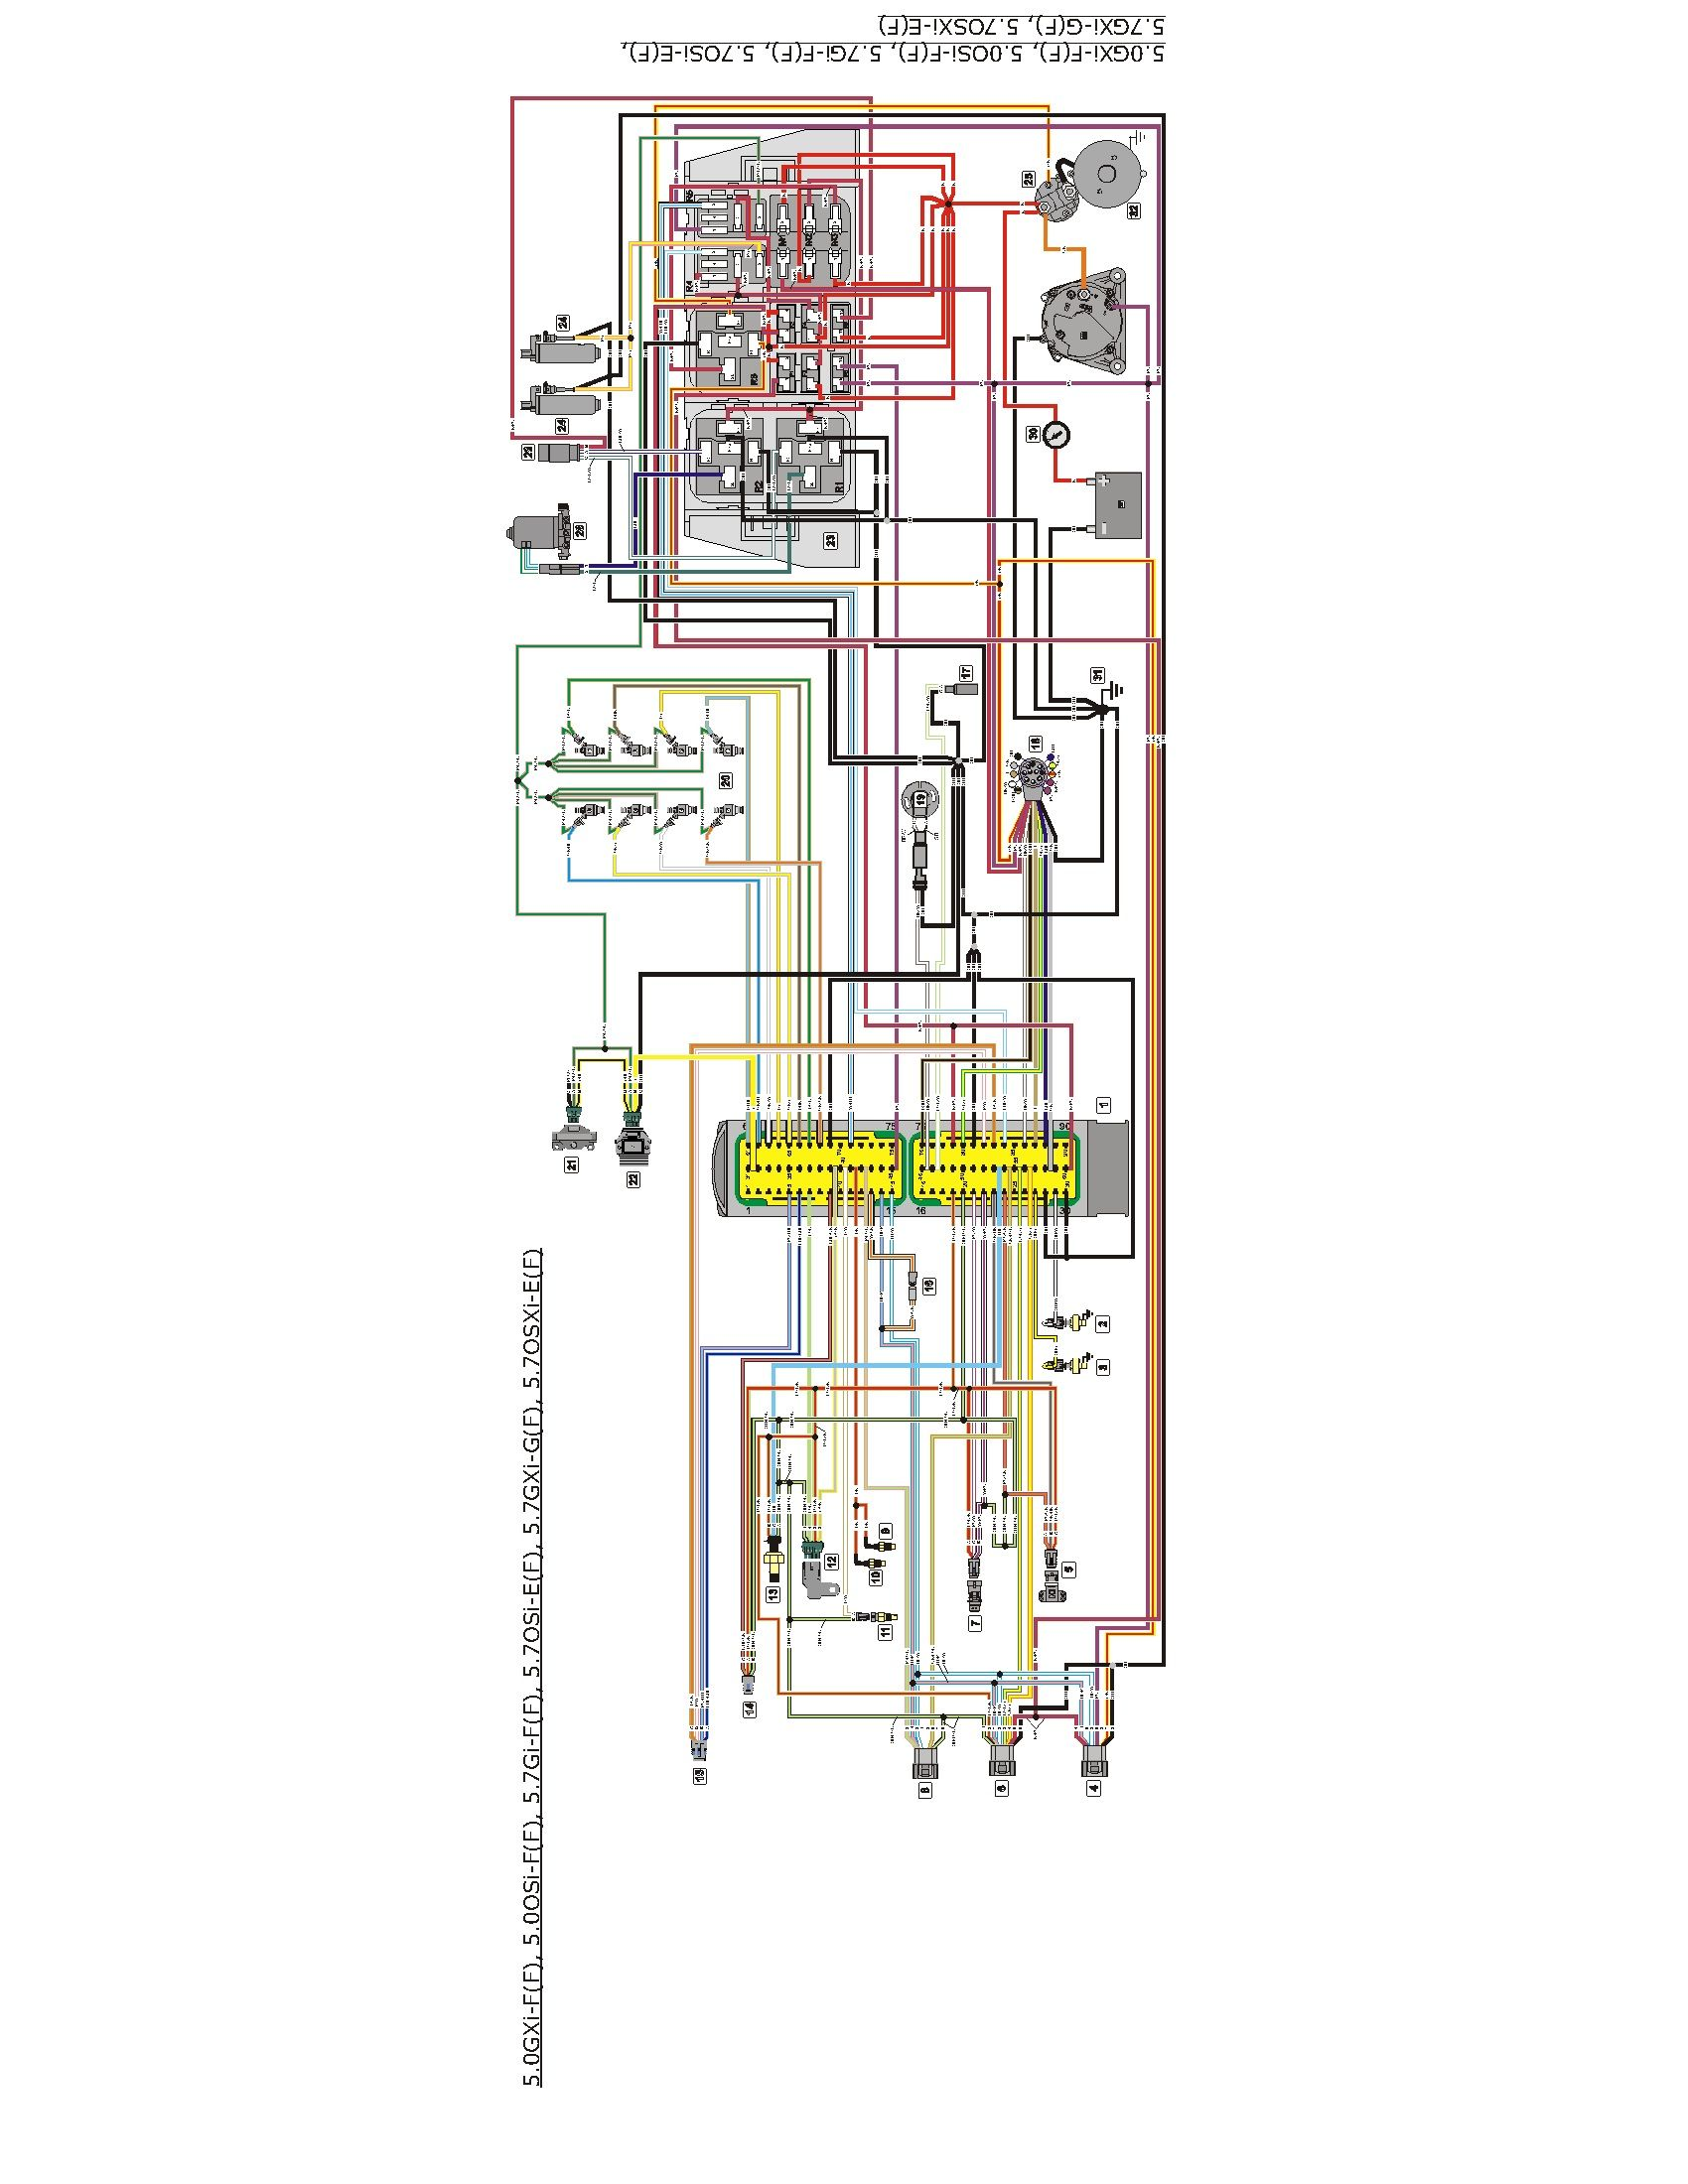 small resolution of volvo penta 5 7 engine wiring diagram mercury outboard boat engine home design boats